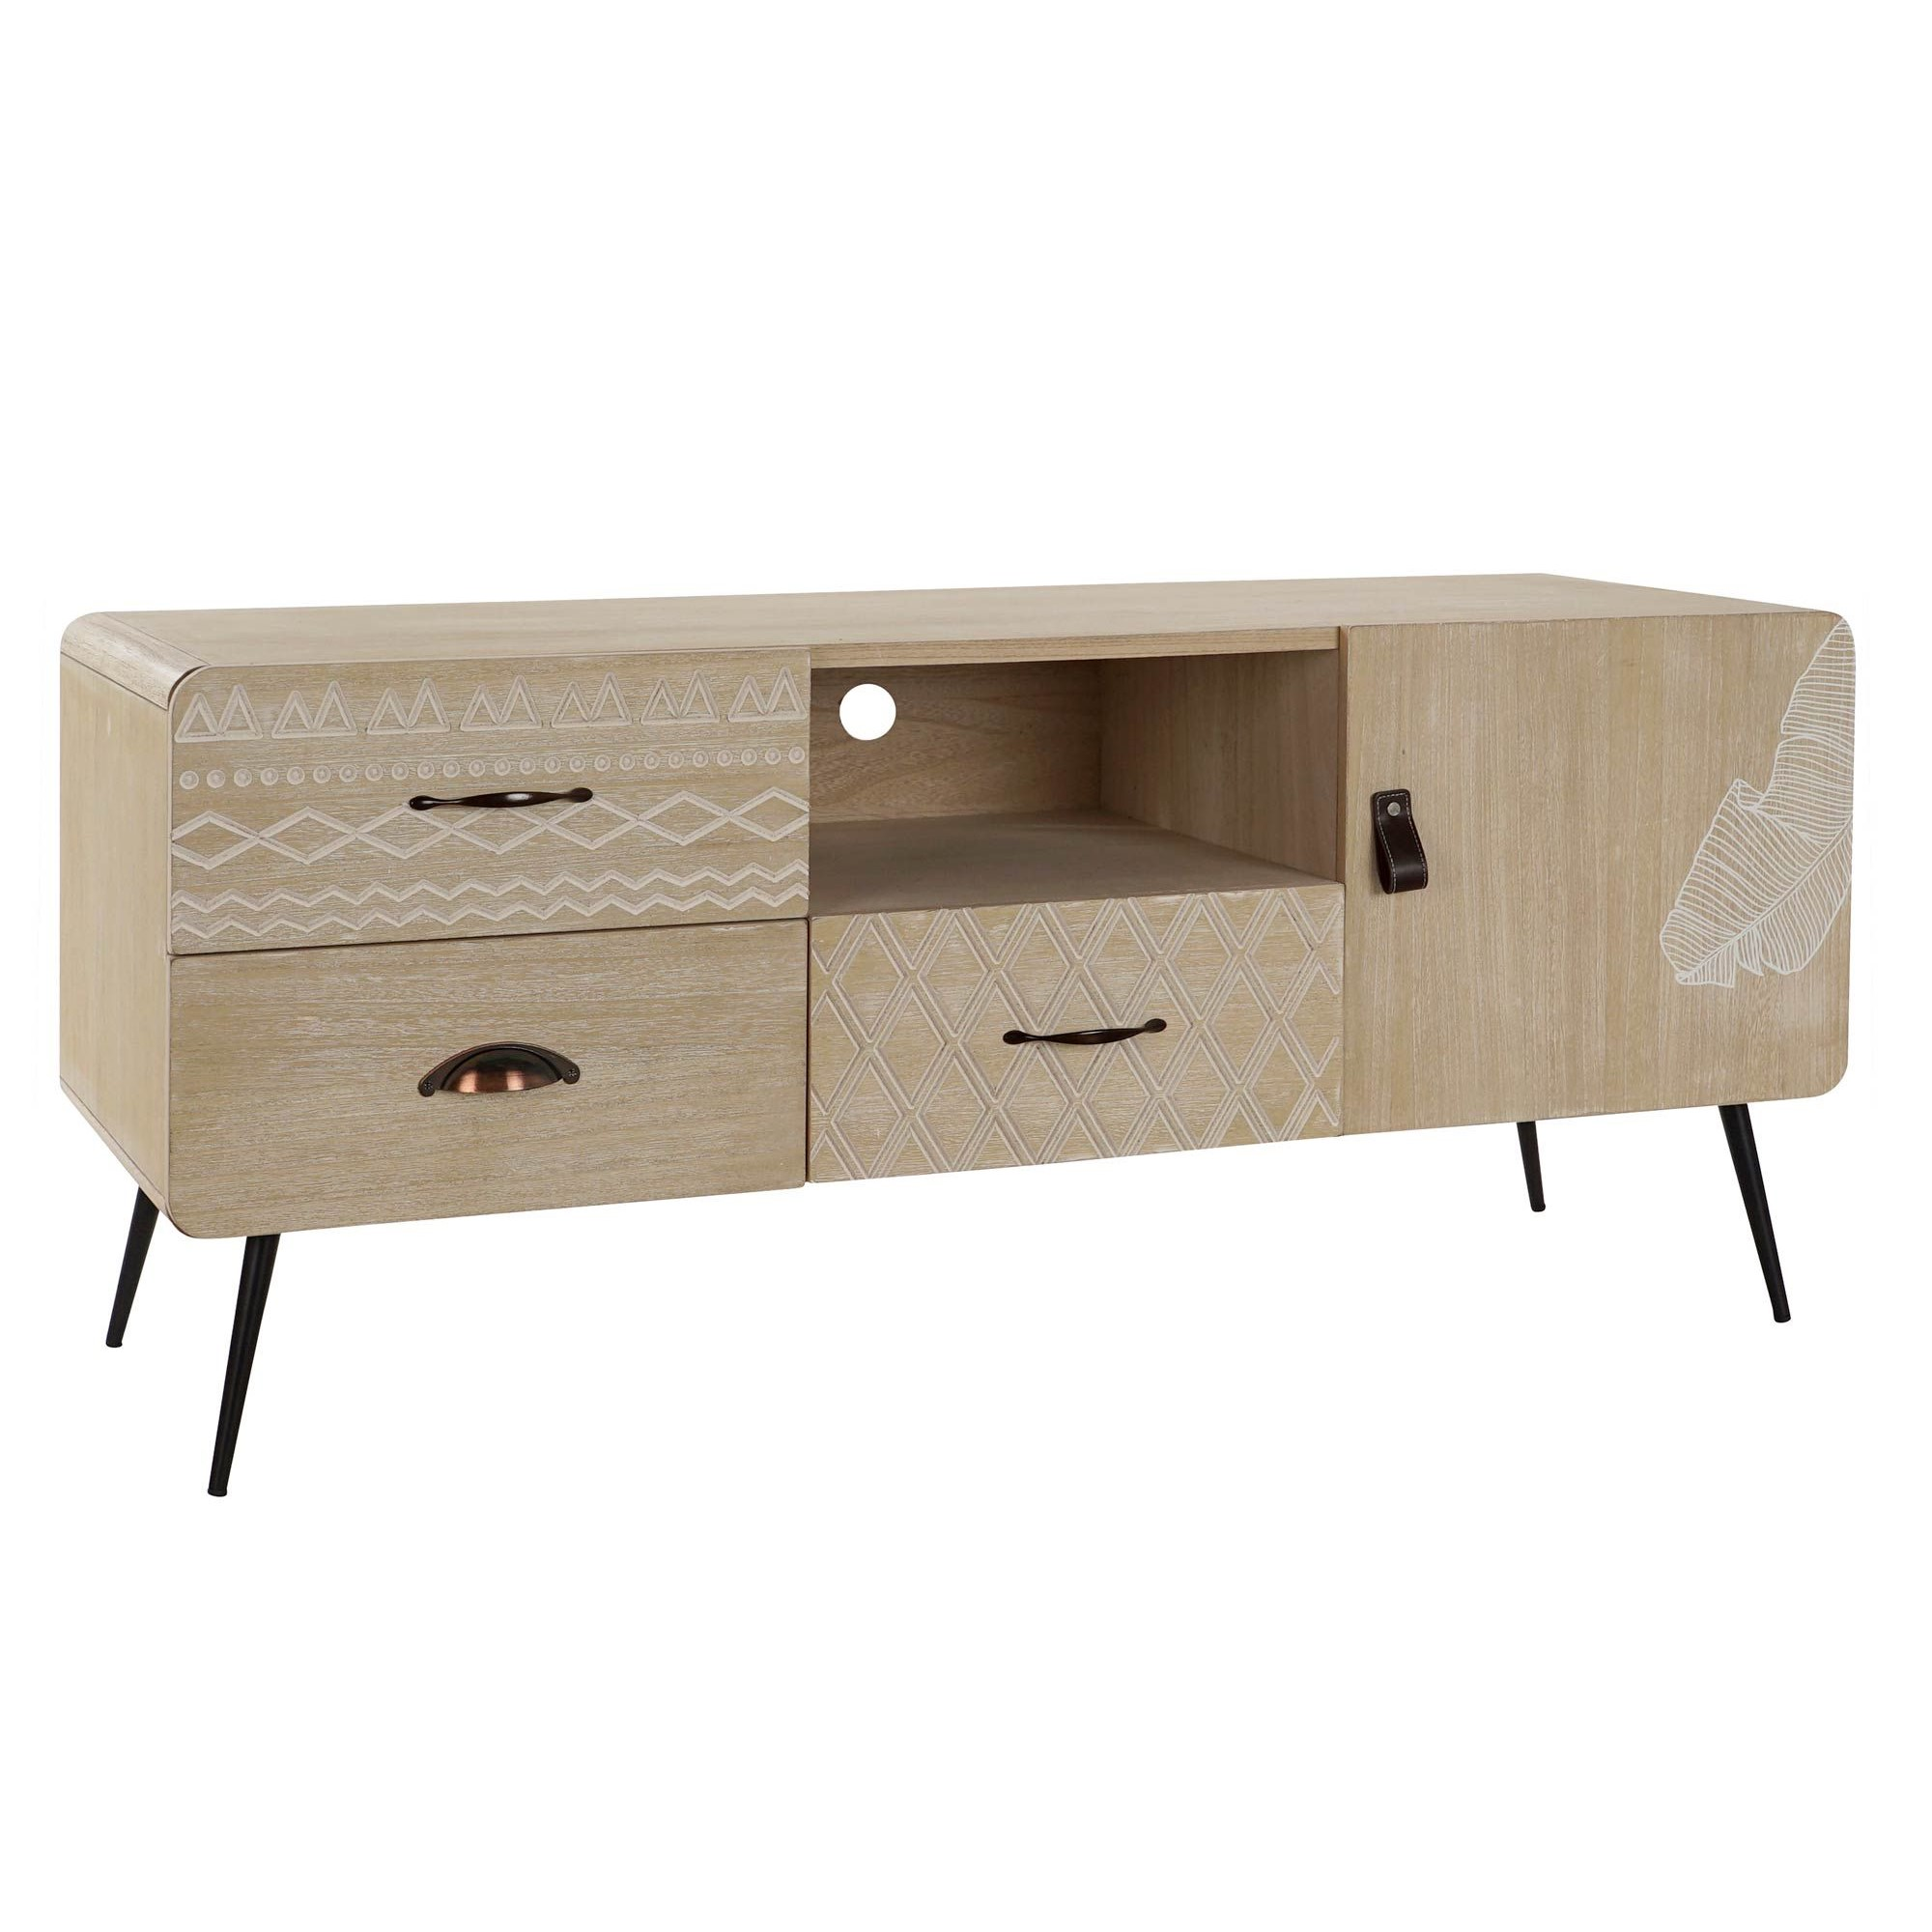 31599-mueble-tv-grabado-natural.jpg